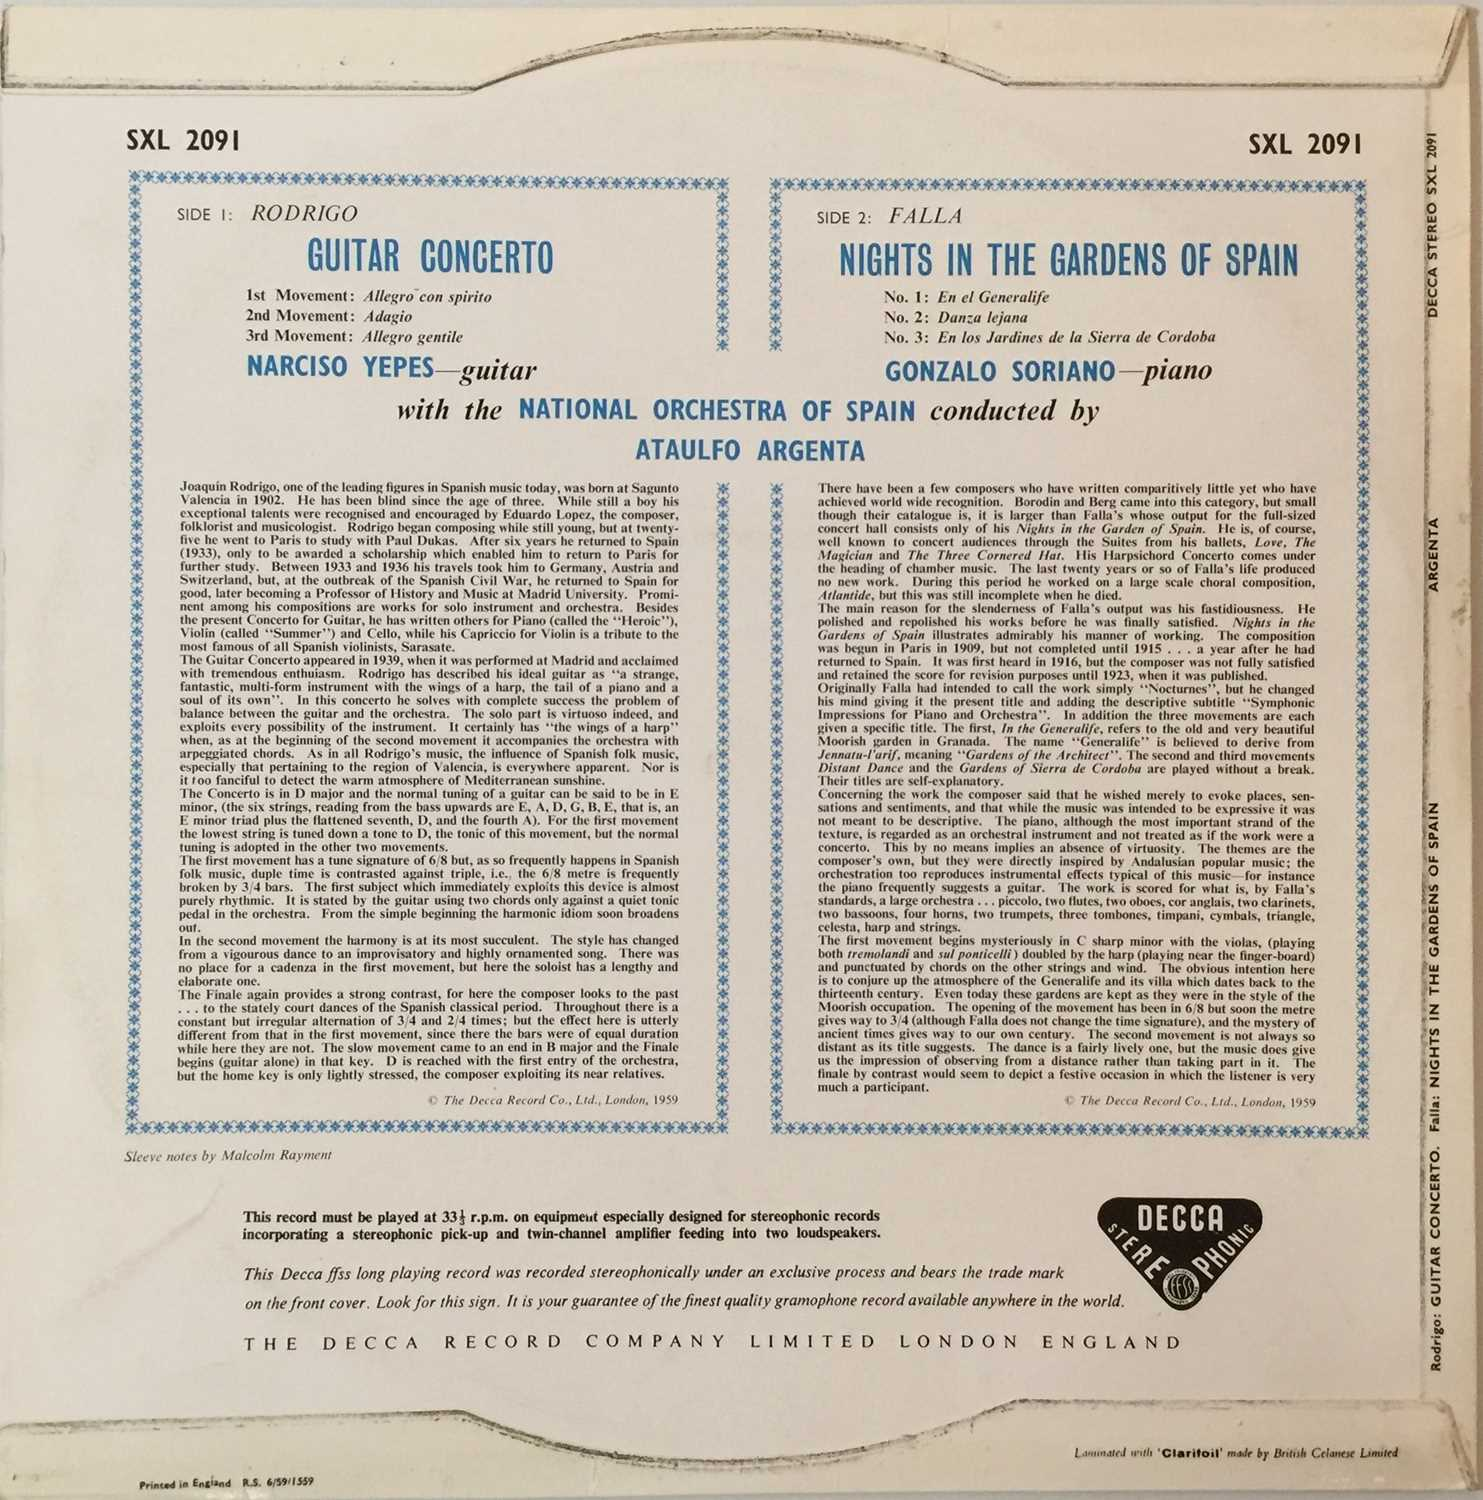 ARGENTA - FALLA: NIGHTS IN THE GARDENS OF SPAIN UK STEREO LP (SXL 2091 - ED1) - Image 2 of 4